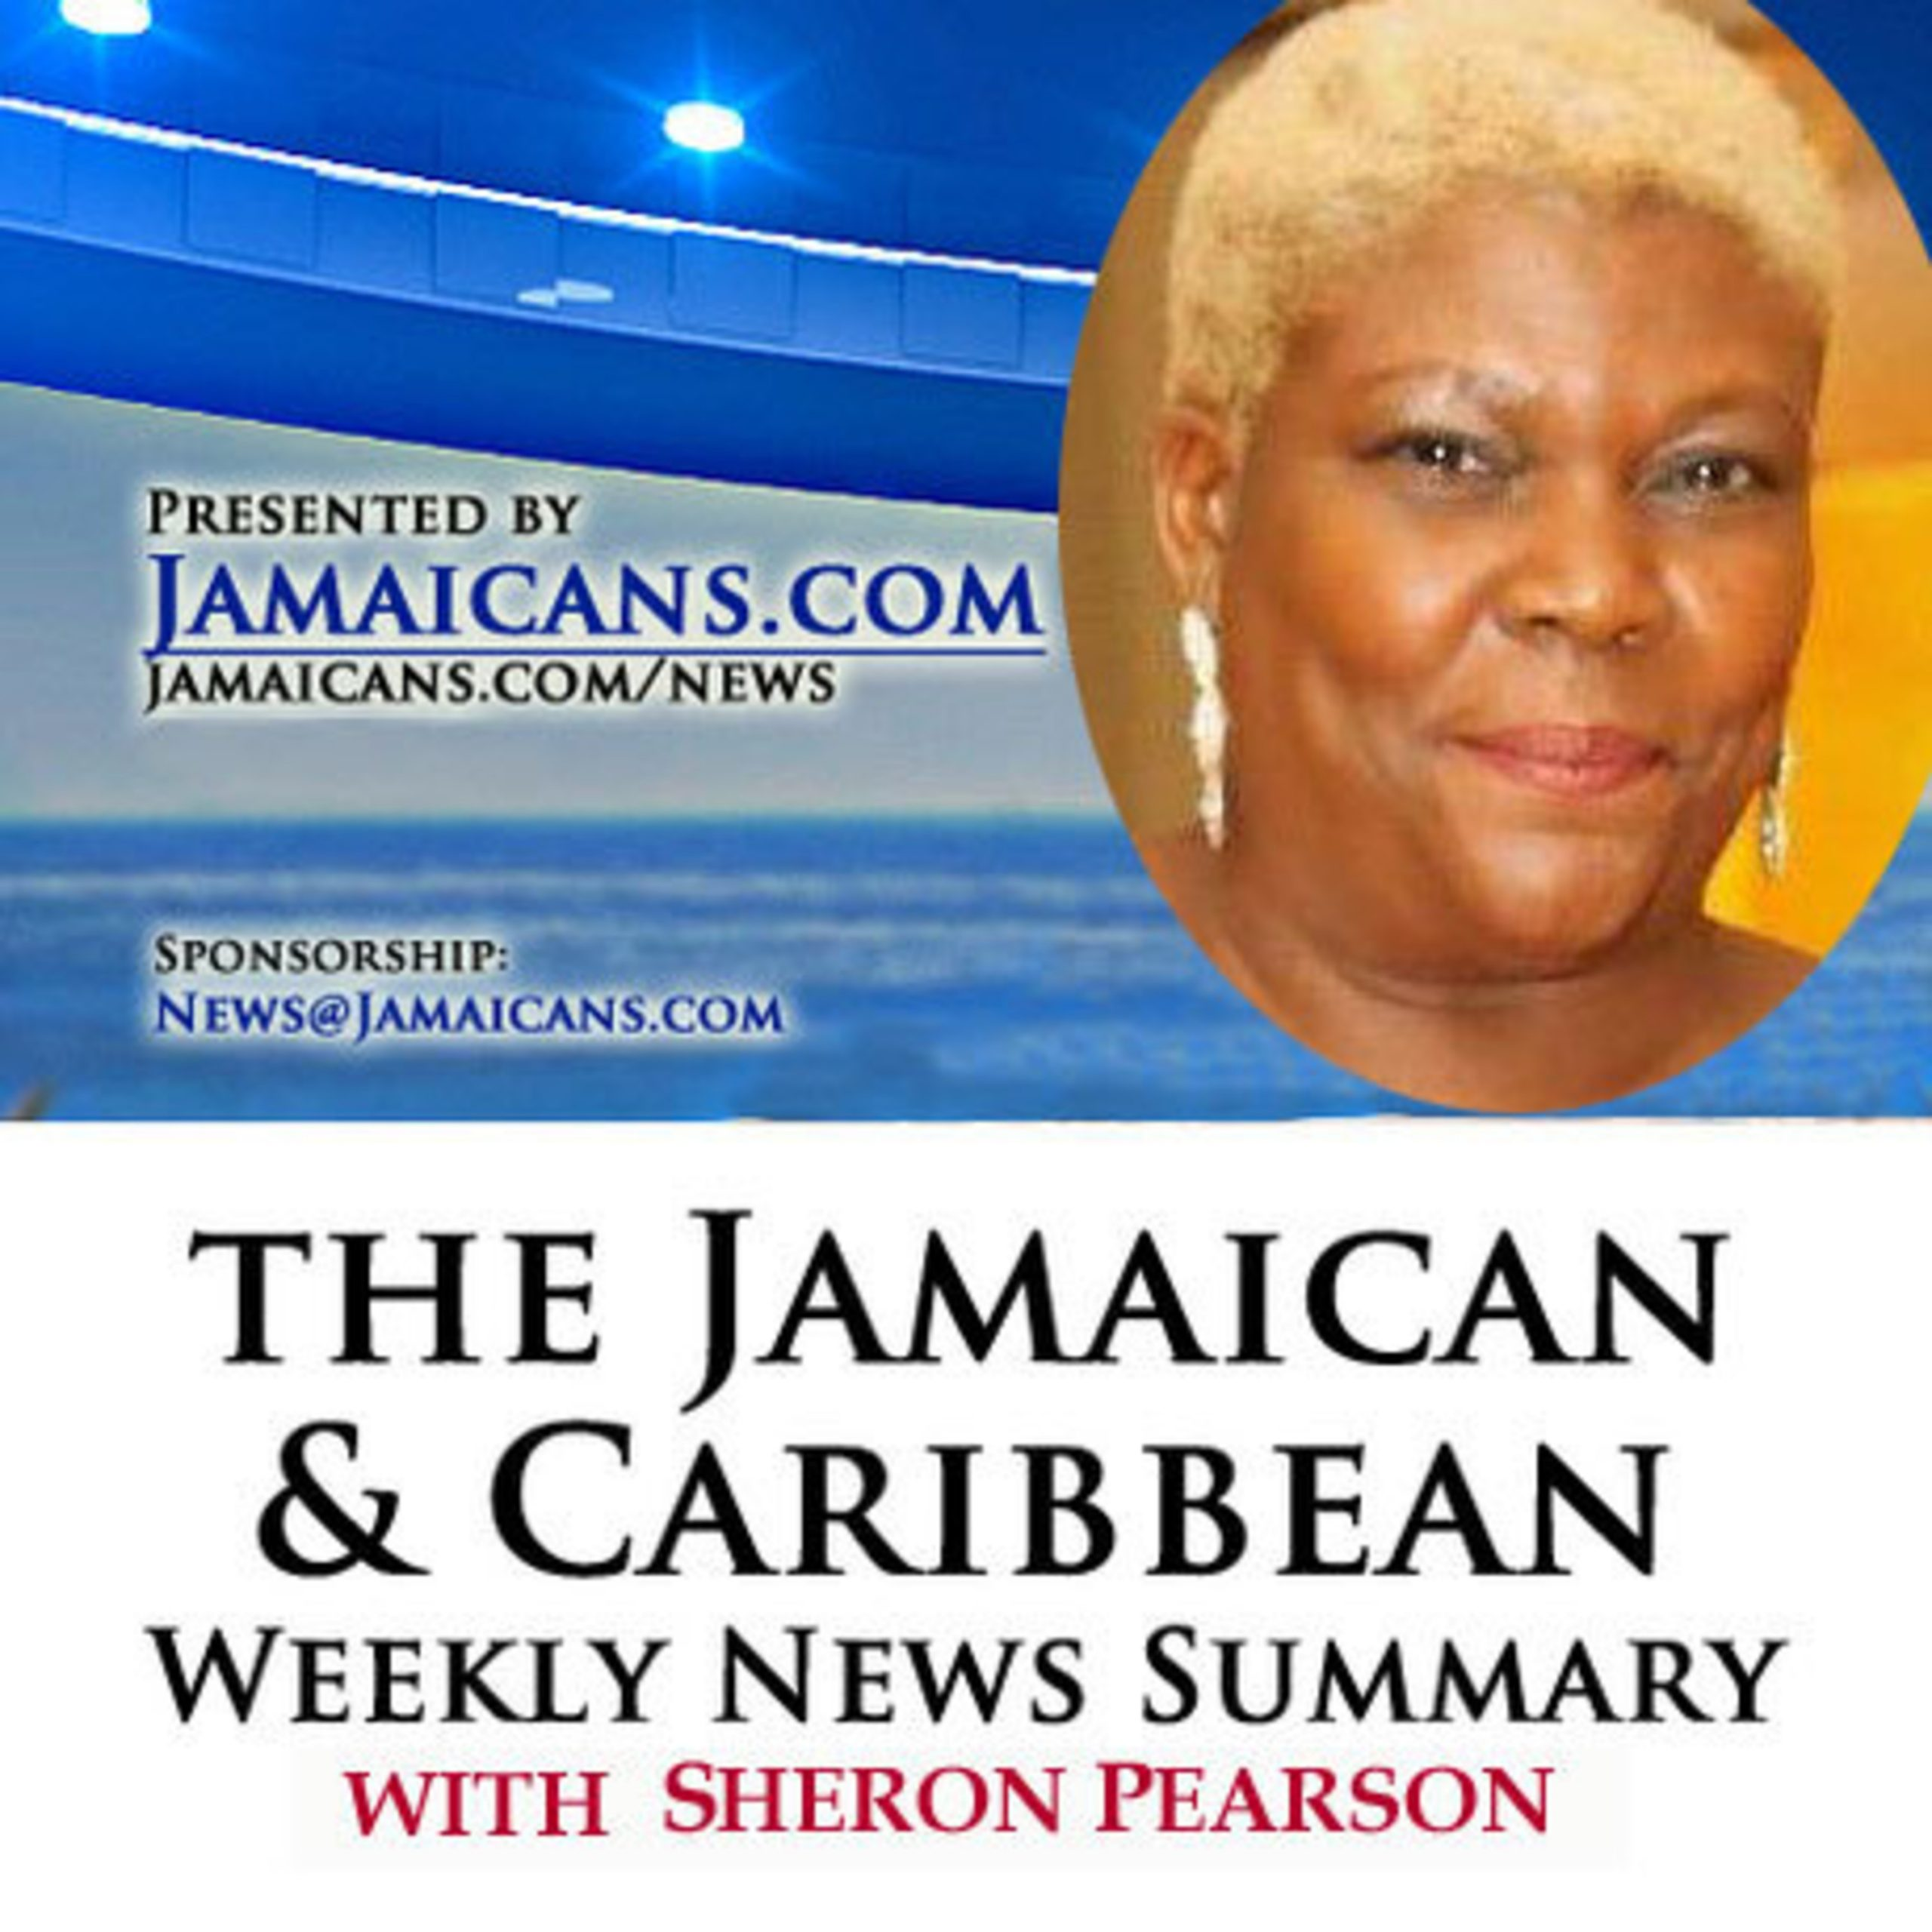 Listen to the Podcast of The Jamaica & Caribbean Weekly News Summary for the week ending November 15, 2019